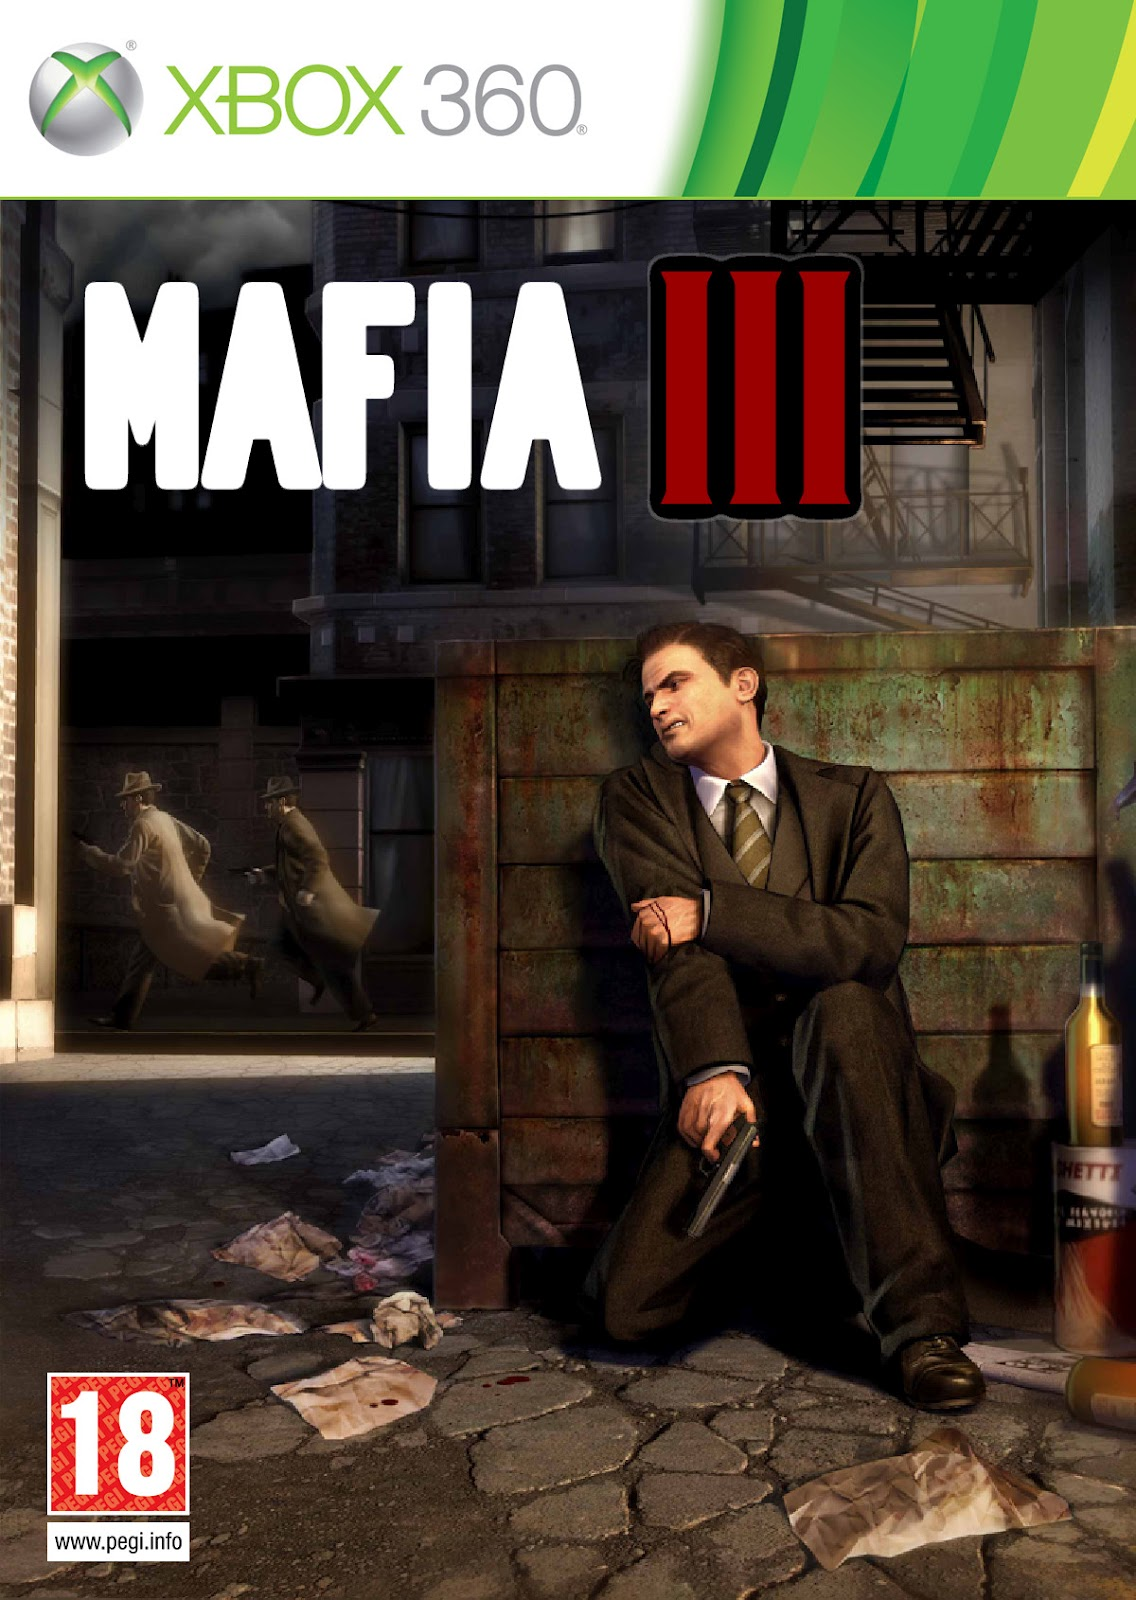 Mafia Games For Ps4 : Mafia iii playstation free games for you